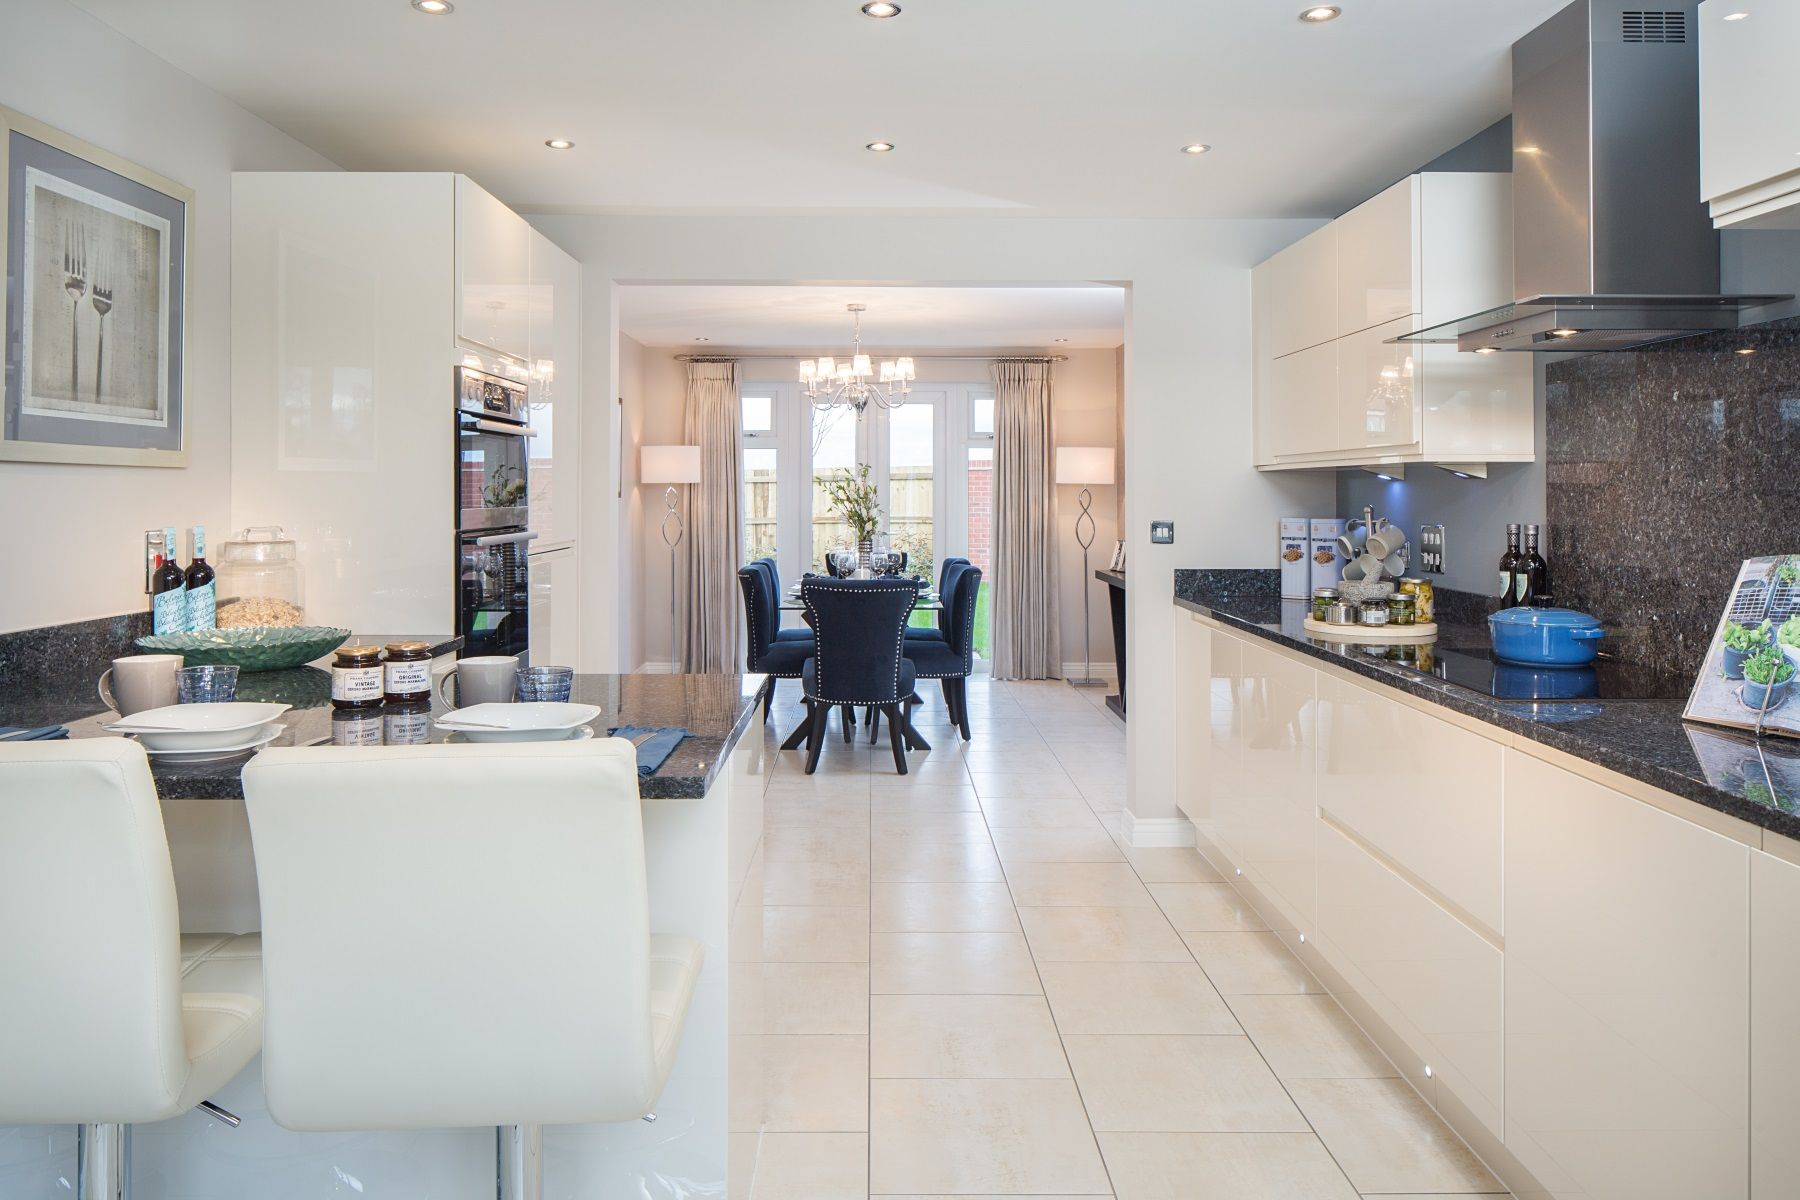 TW Exeter - Cranbrook - Thornford example kitchen 3